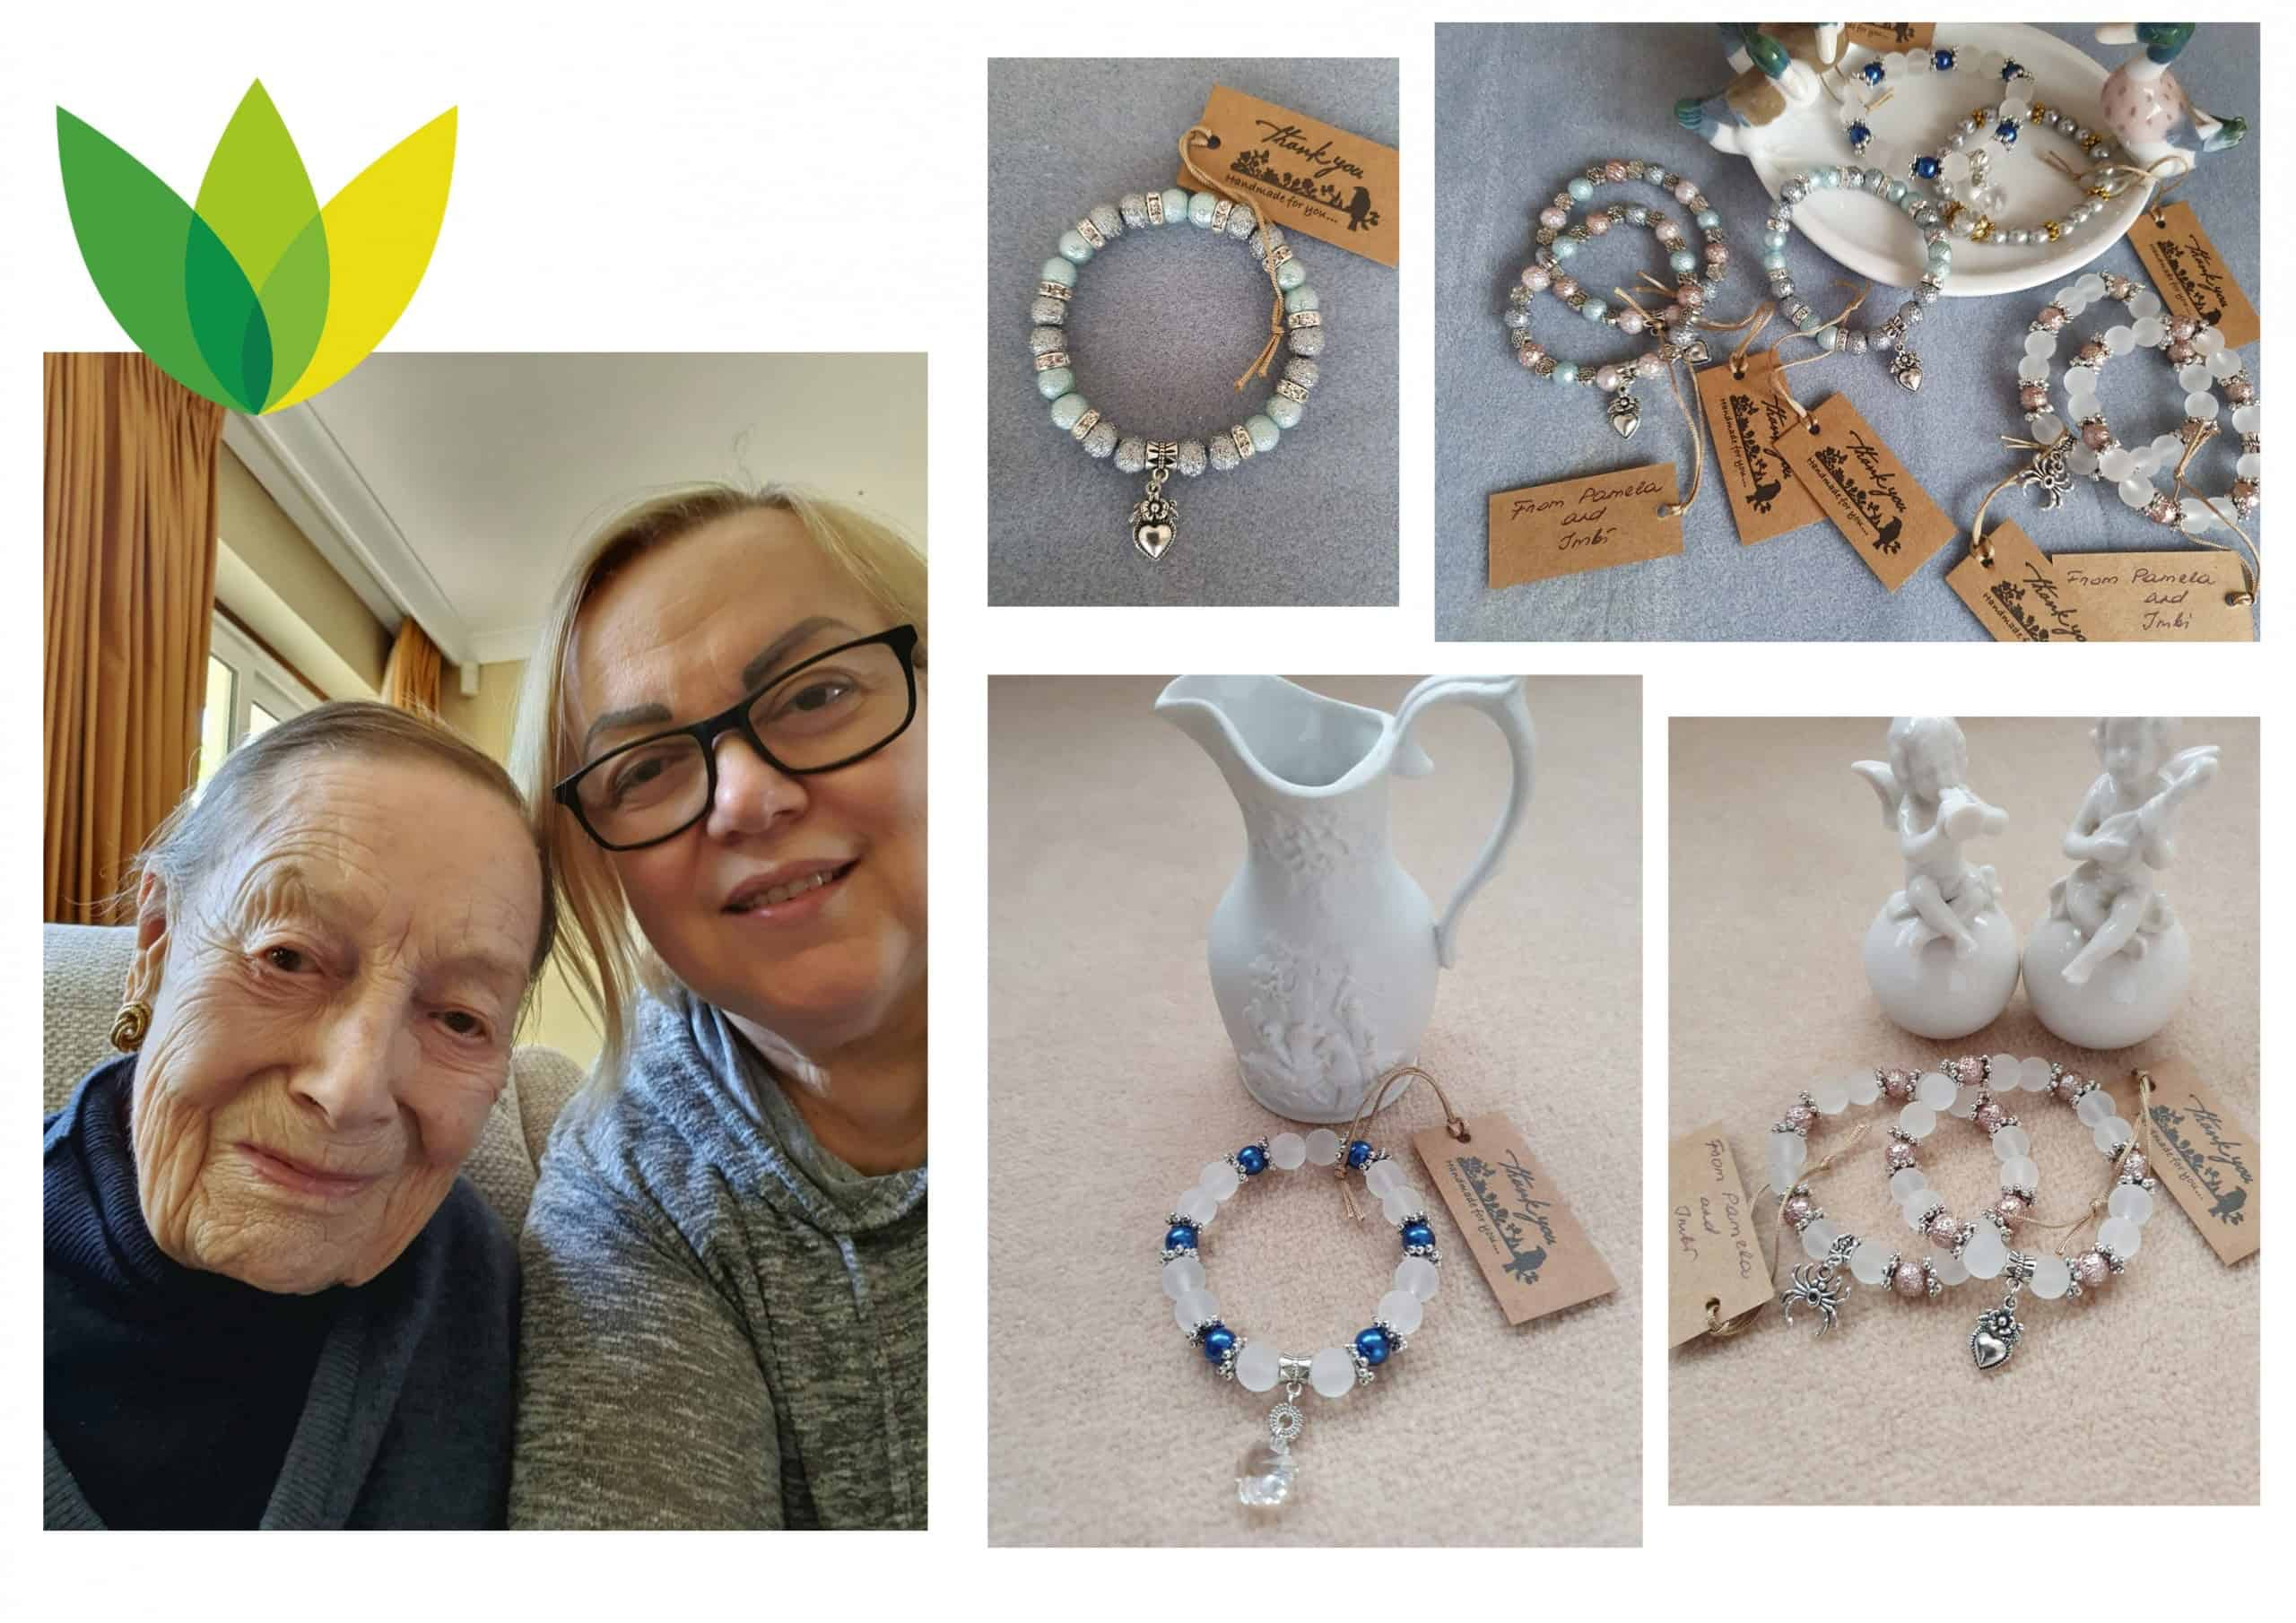 An example of hand made jewellery from the Arts and Crafts Challenge